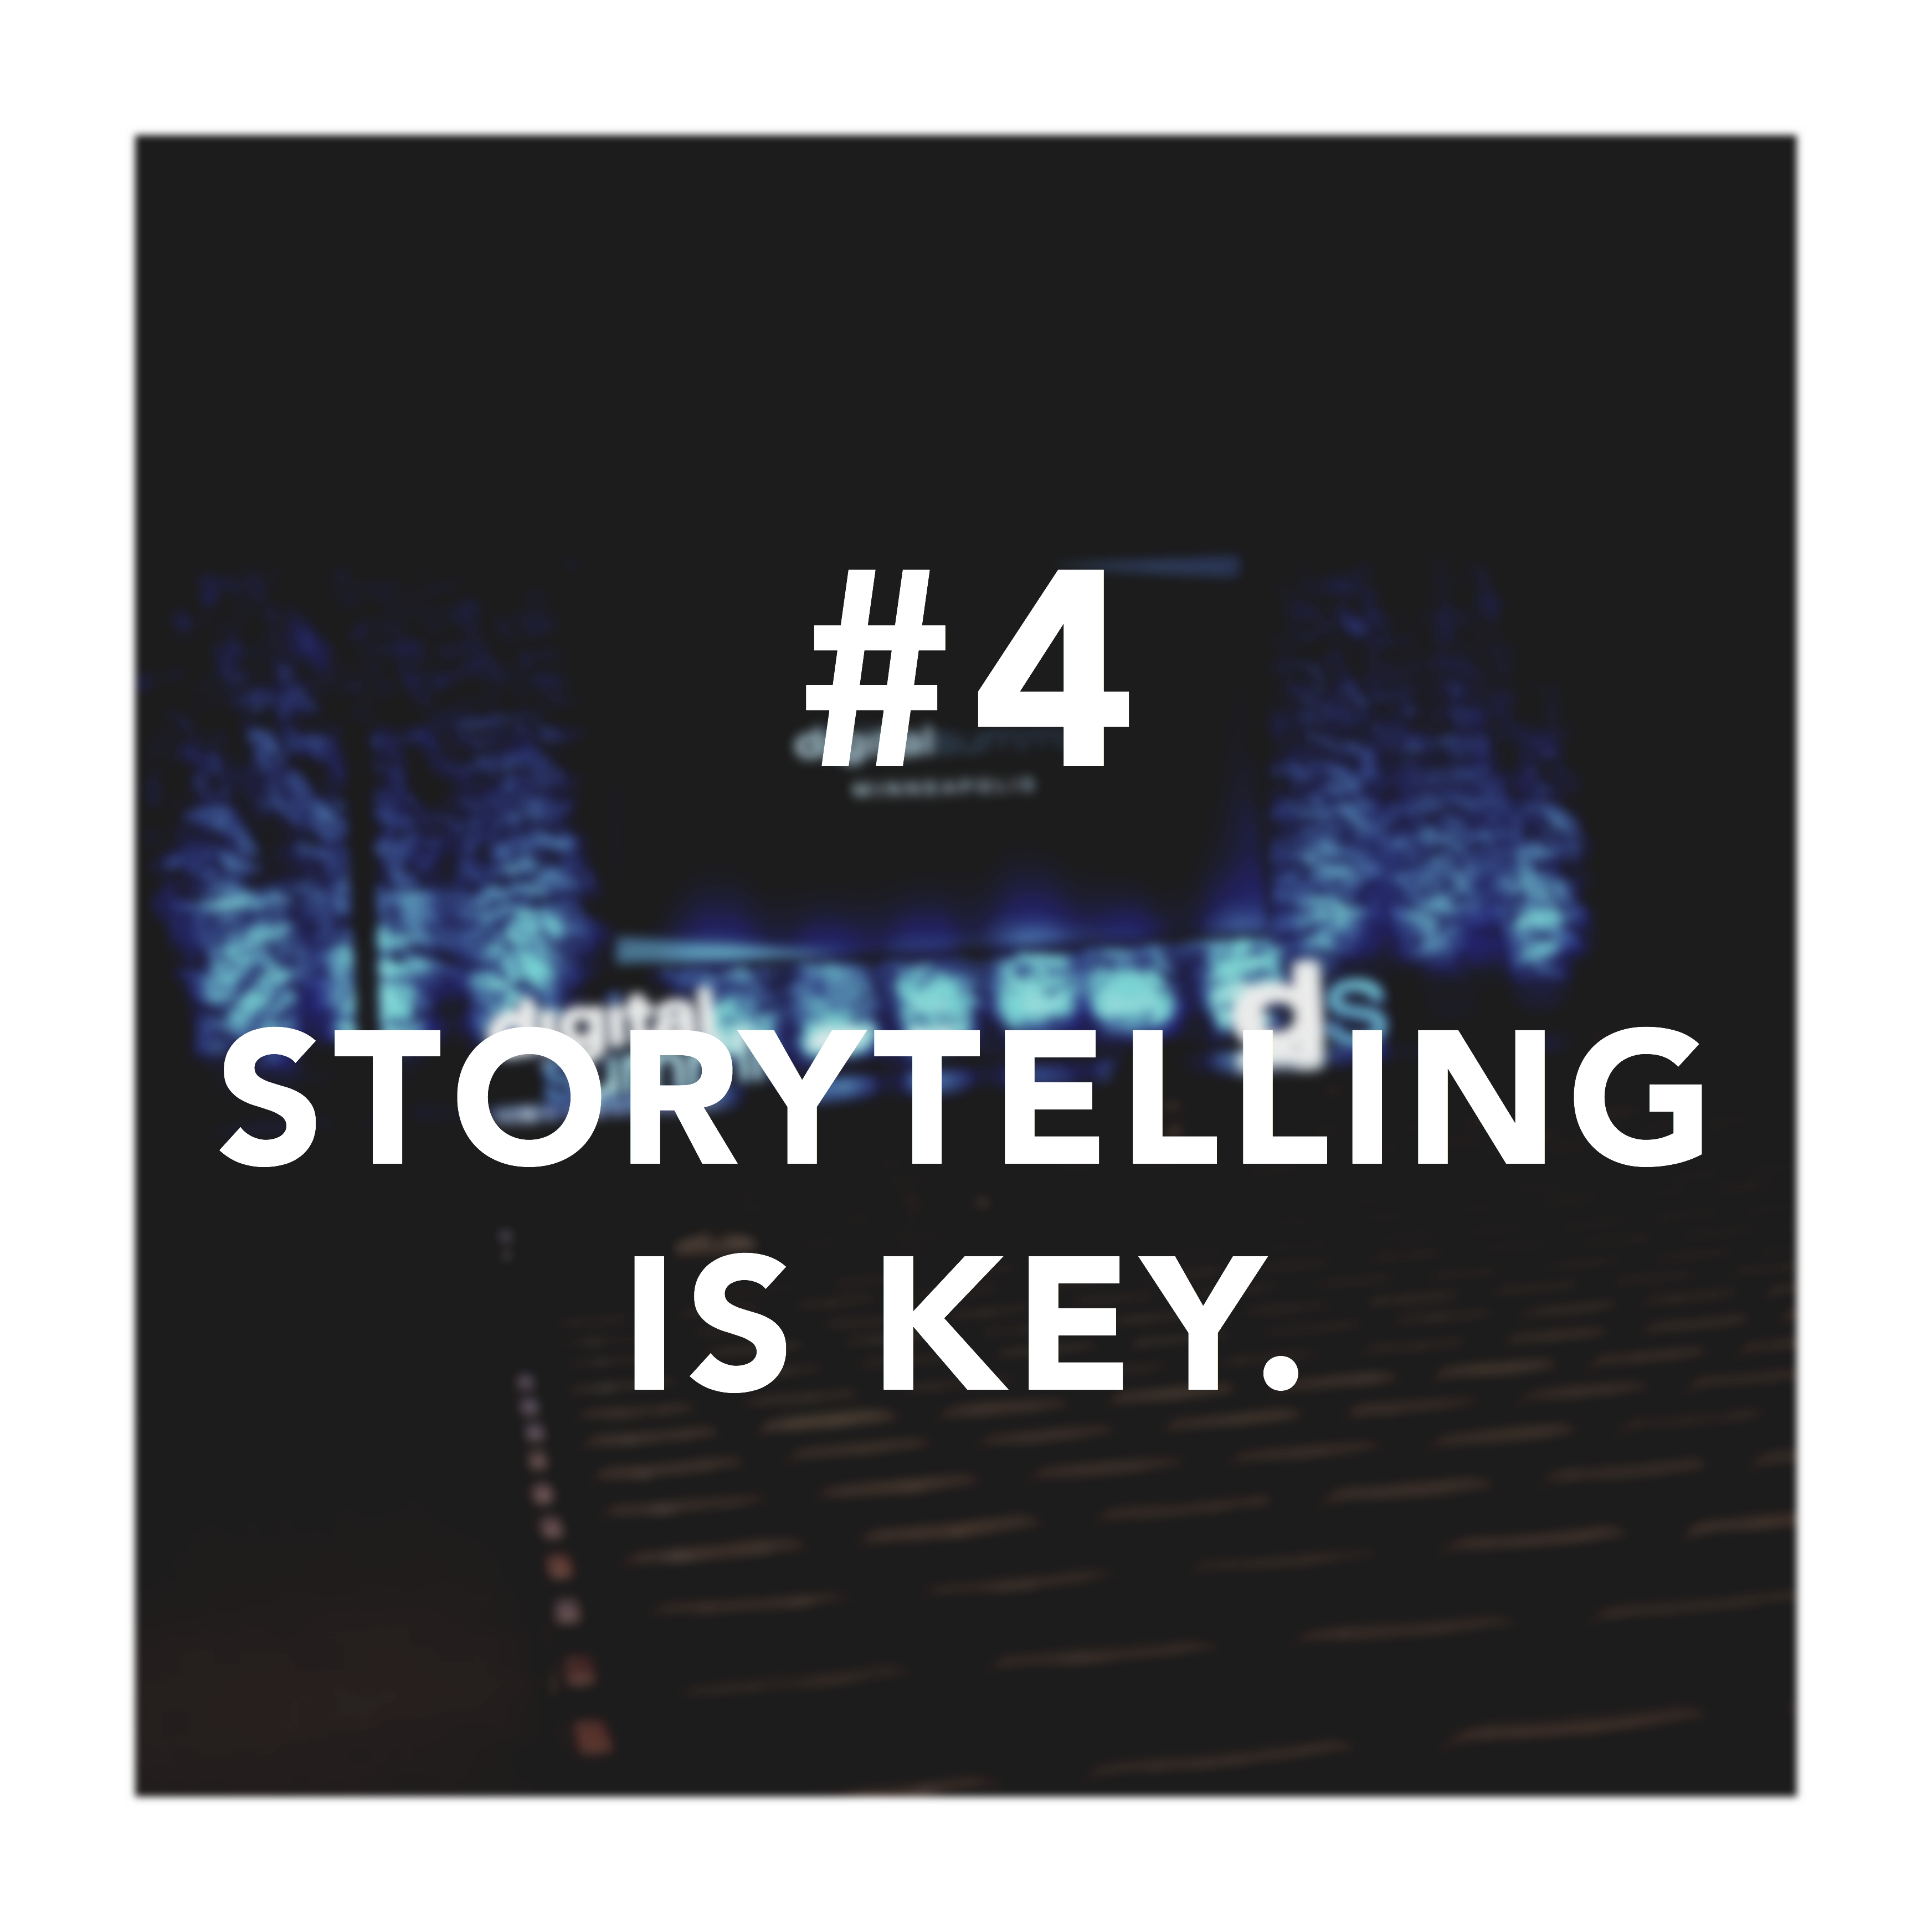 "Fourth takeaway for digital summit countdown with ""Storytelling is Key"" text"